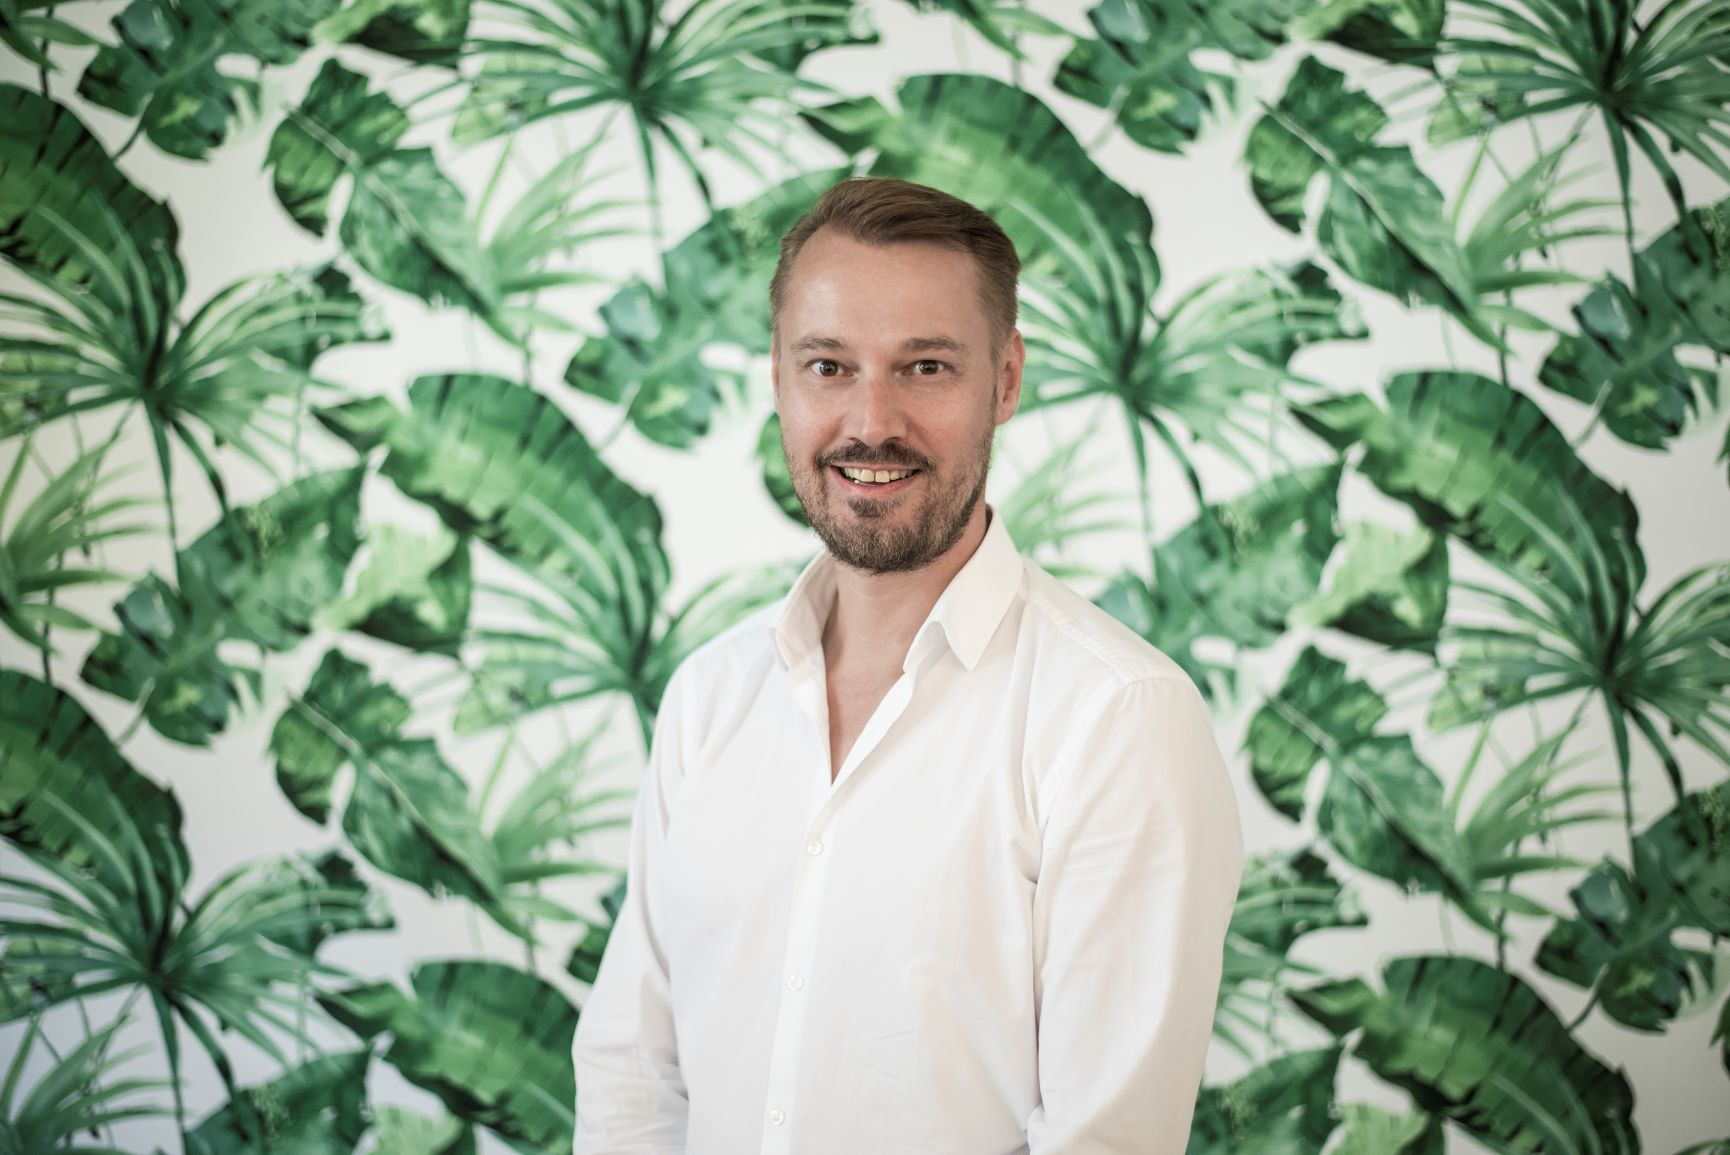 Matthias Knappe - Your contact person for Reservations & Sales at Cocoon Hotels Munich